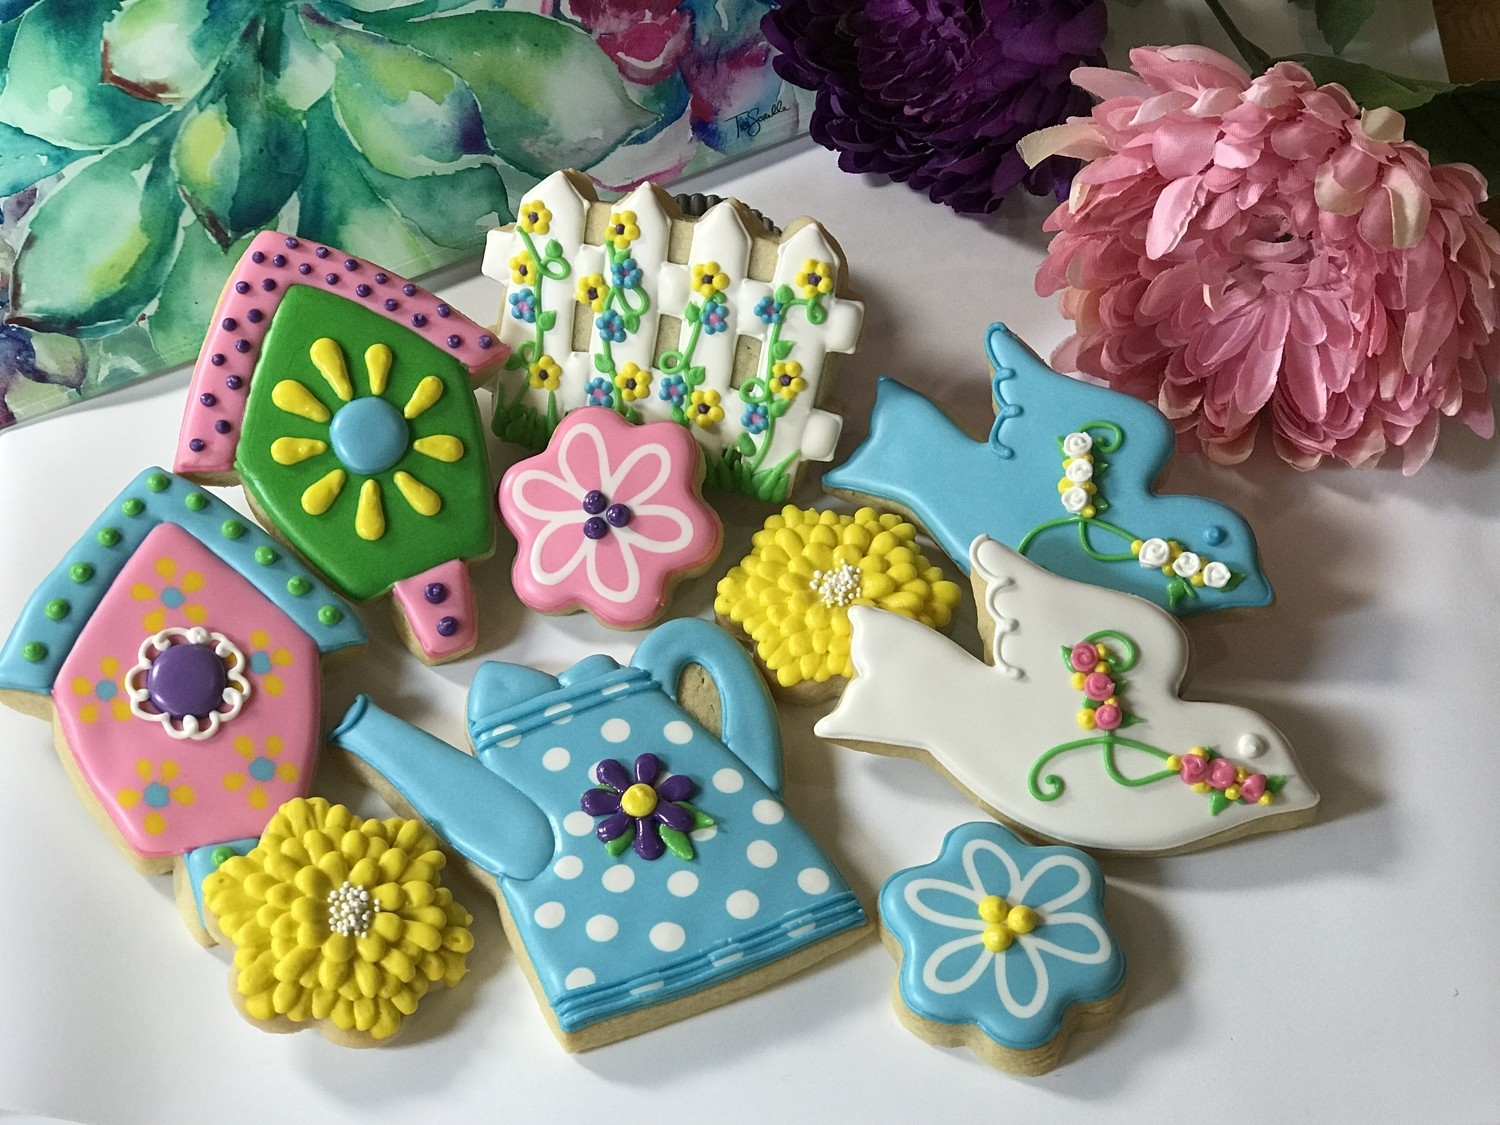 SPRING Decorating Workshop - SUNDAY, MAY 19, 2019 at 3:00 p.m. (THE POTPOURRI HOUSE) - ADULT TICKET (Age 13+)